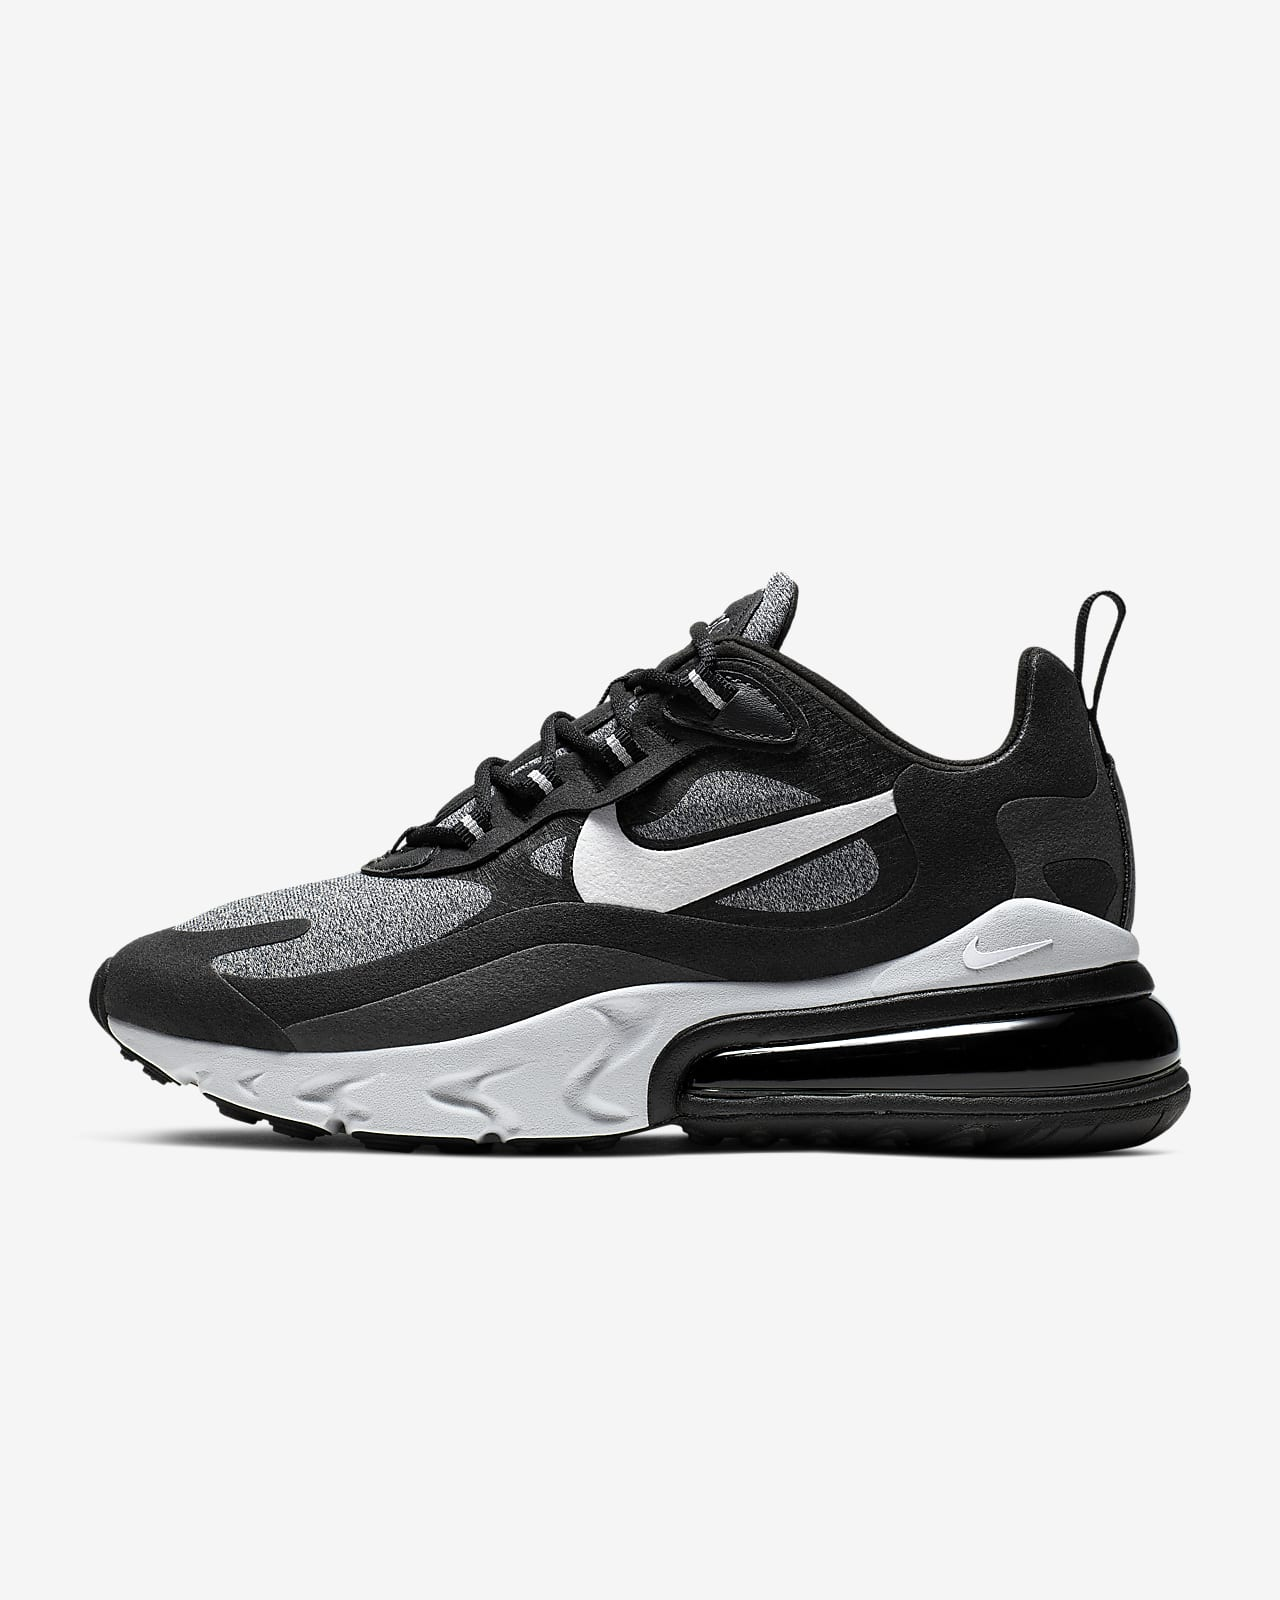 Nike Air Max 270 React Optical Women S Shoe Nike Lu